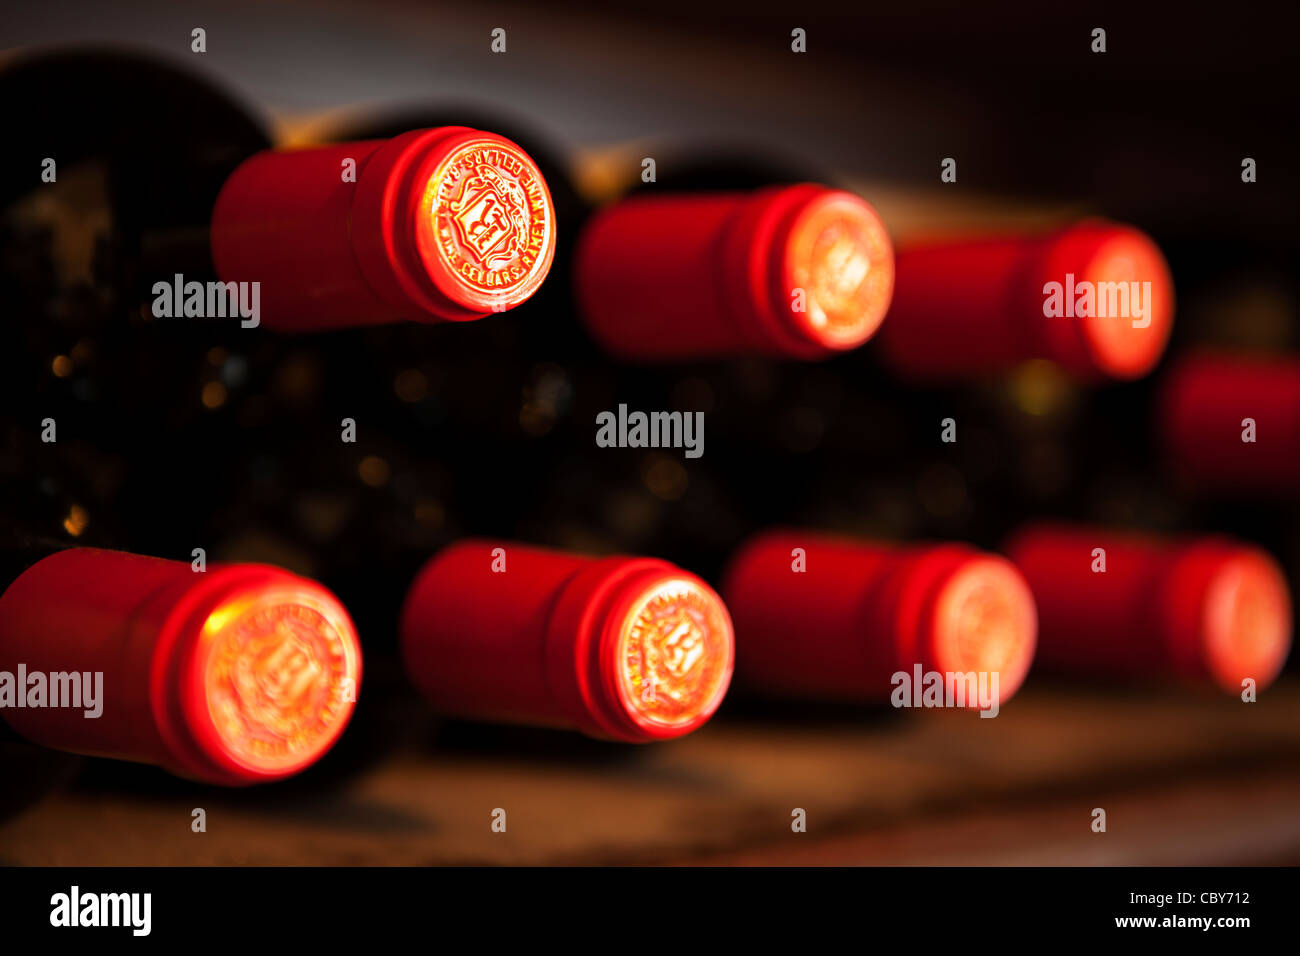 Abstract of red wine bottle tops on a wine rack - Stock Image